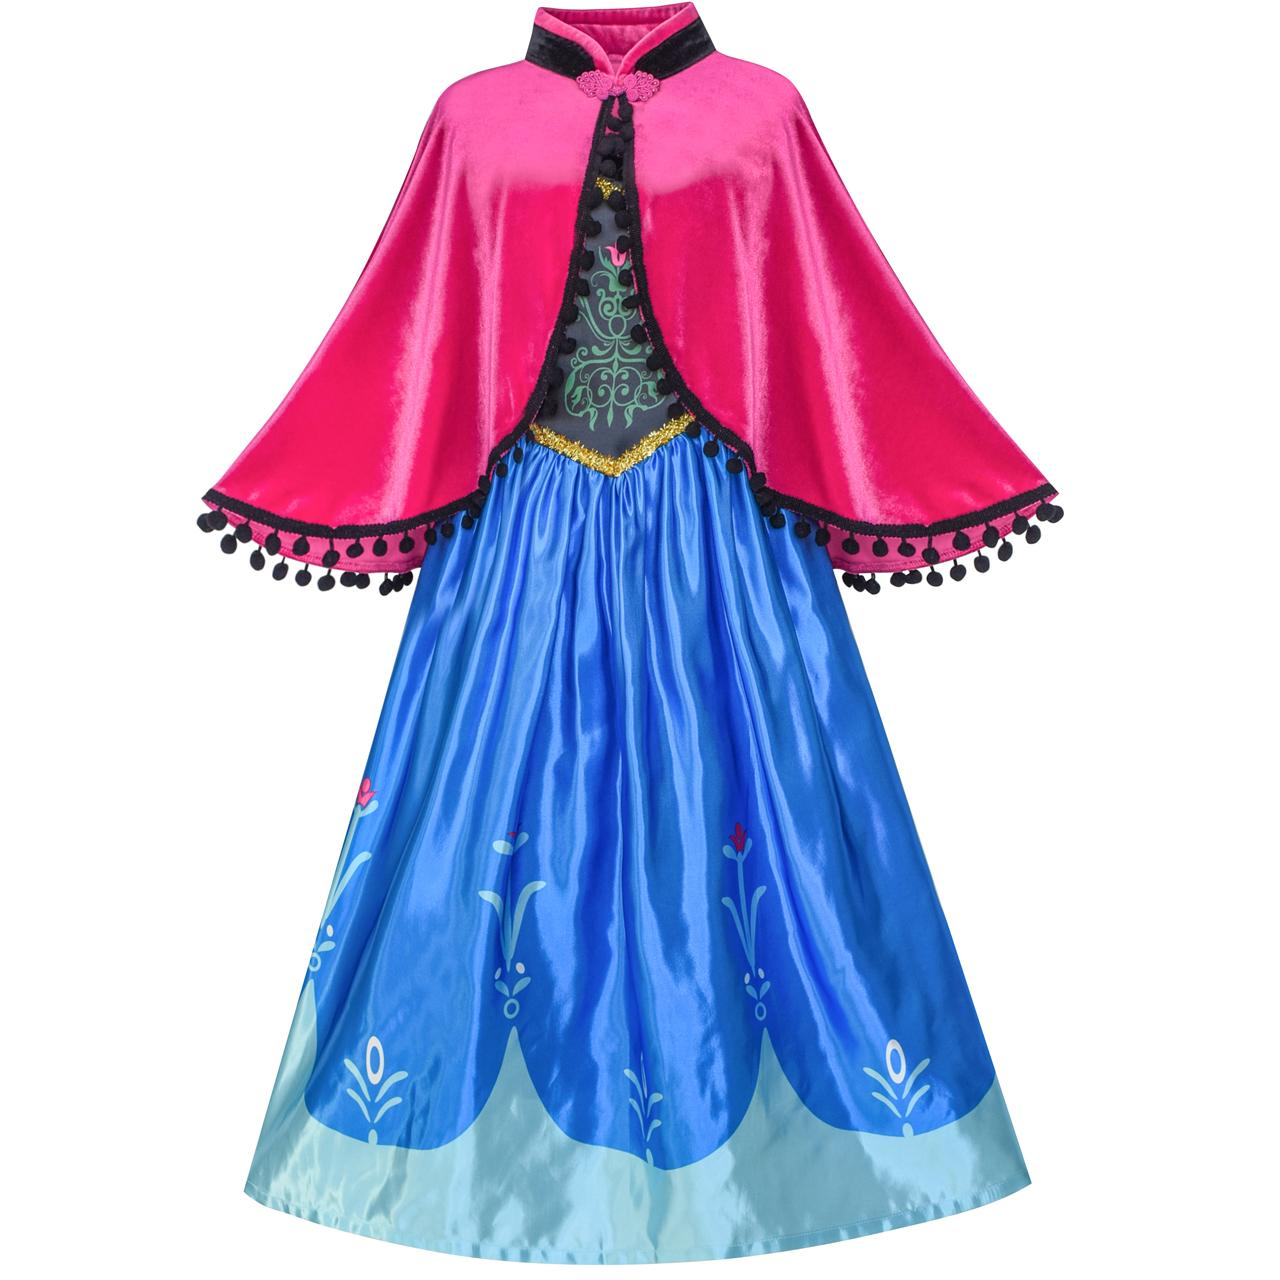 Princess Dress Anna Costume Dress Up Cosplay Cloak Snowflake 2018 Summer Wedding Party Dresses Kids Clothes Size 5-12 Pageant dimension w mira yurizaki cosplay costume custom any size